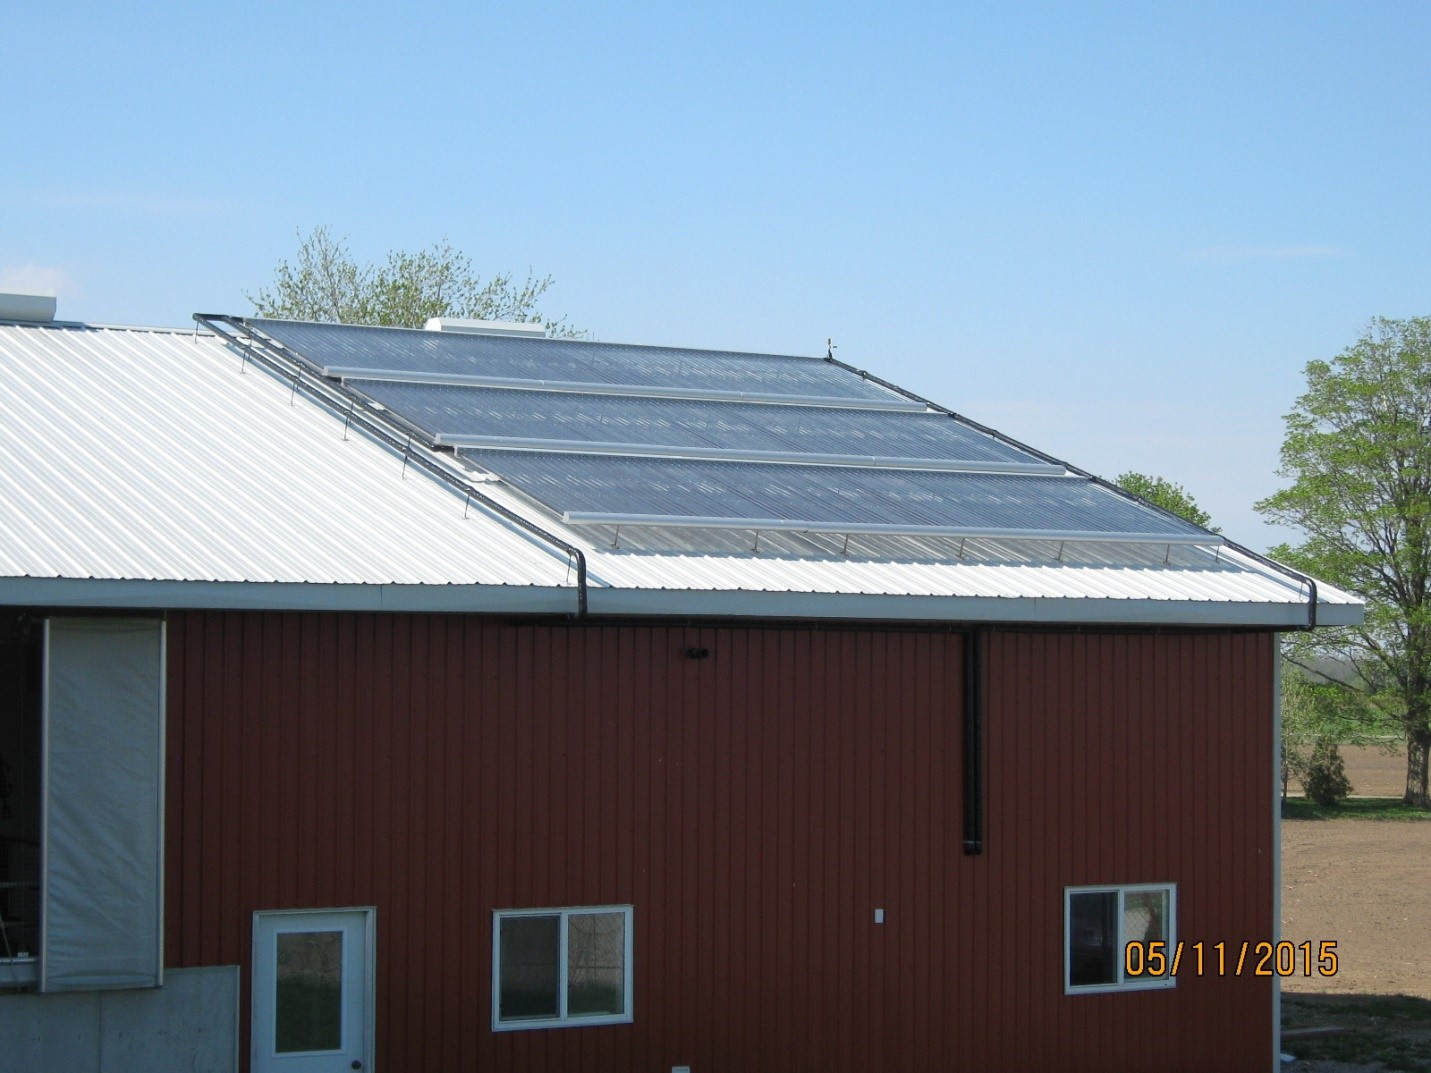 Woodstock, Ontario Solar Water Heating & Cooling Systems